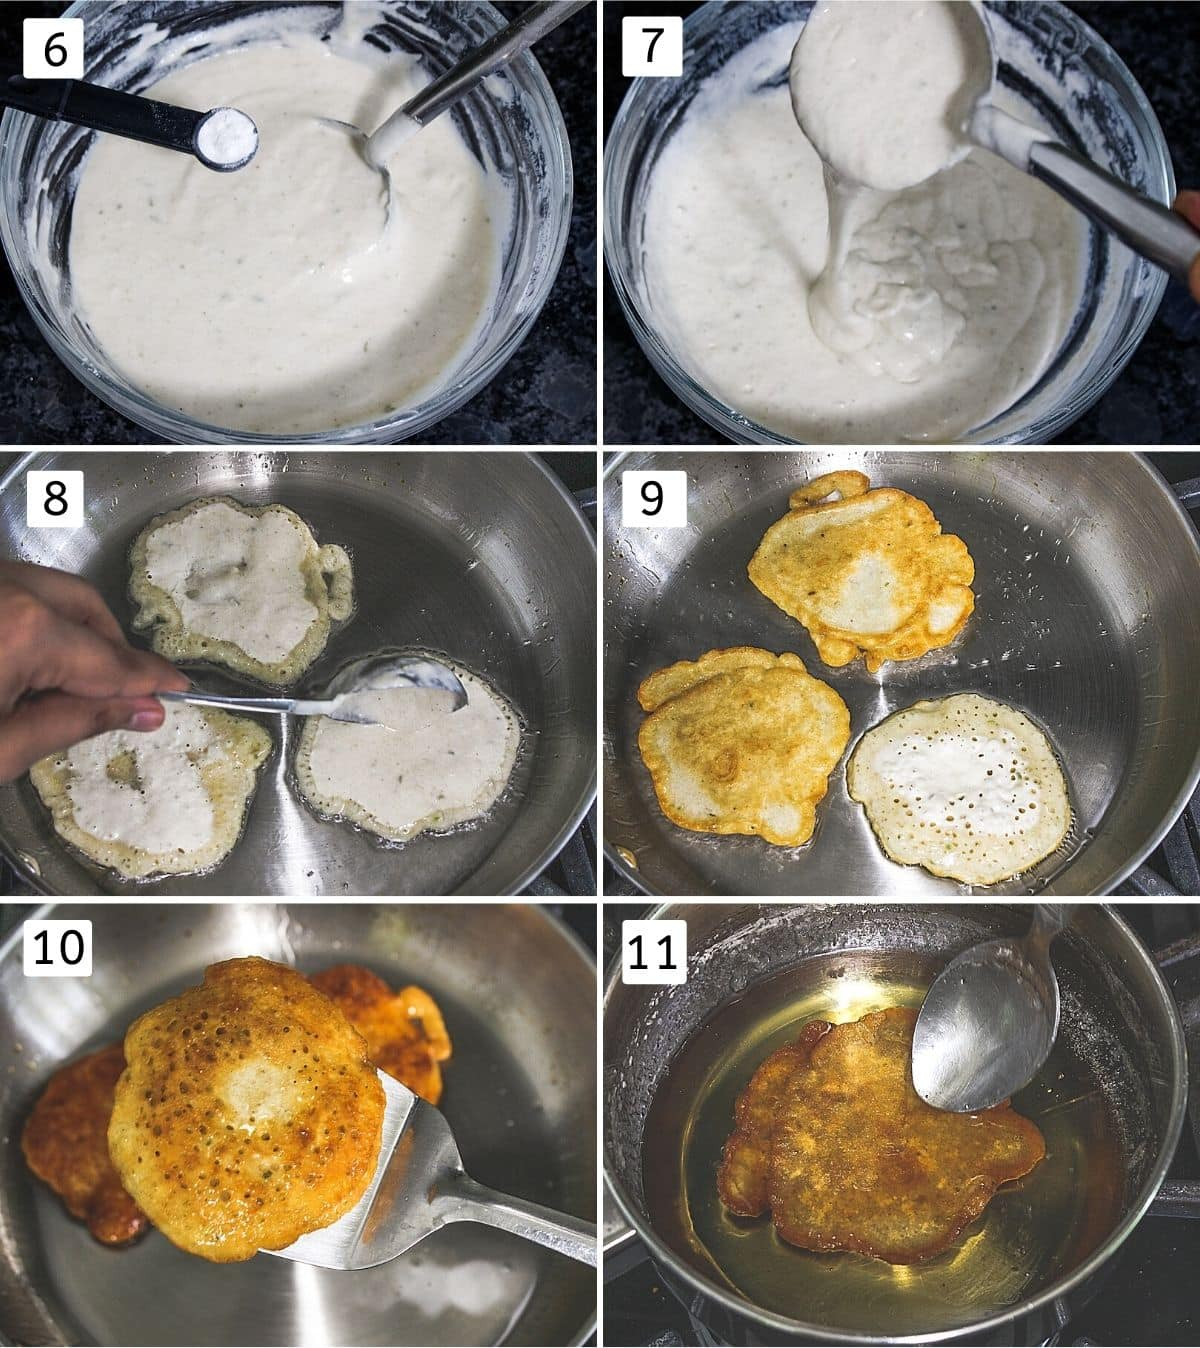 Collage of 6 steps showing adding baking powder, showing the consistency of batter, add ladleful into the ghee, flipped, ready malpua, dunked into syrup